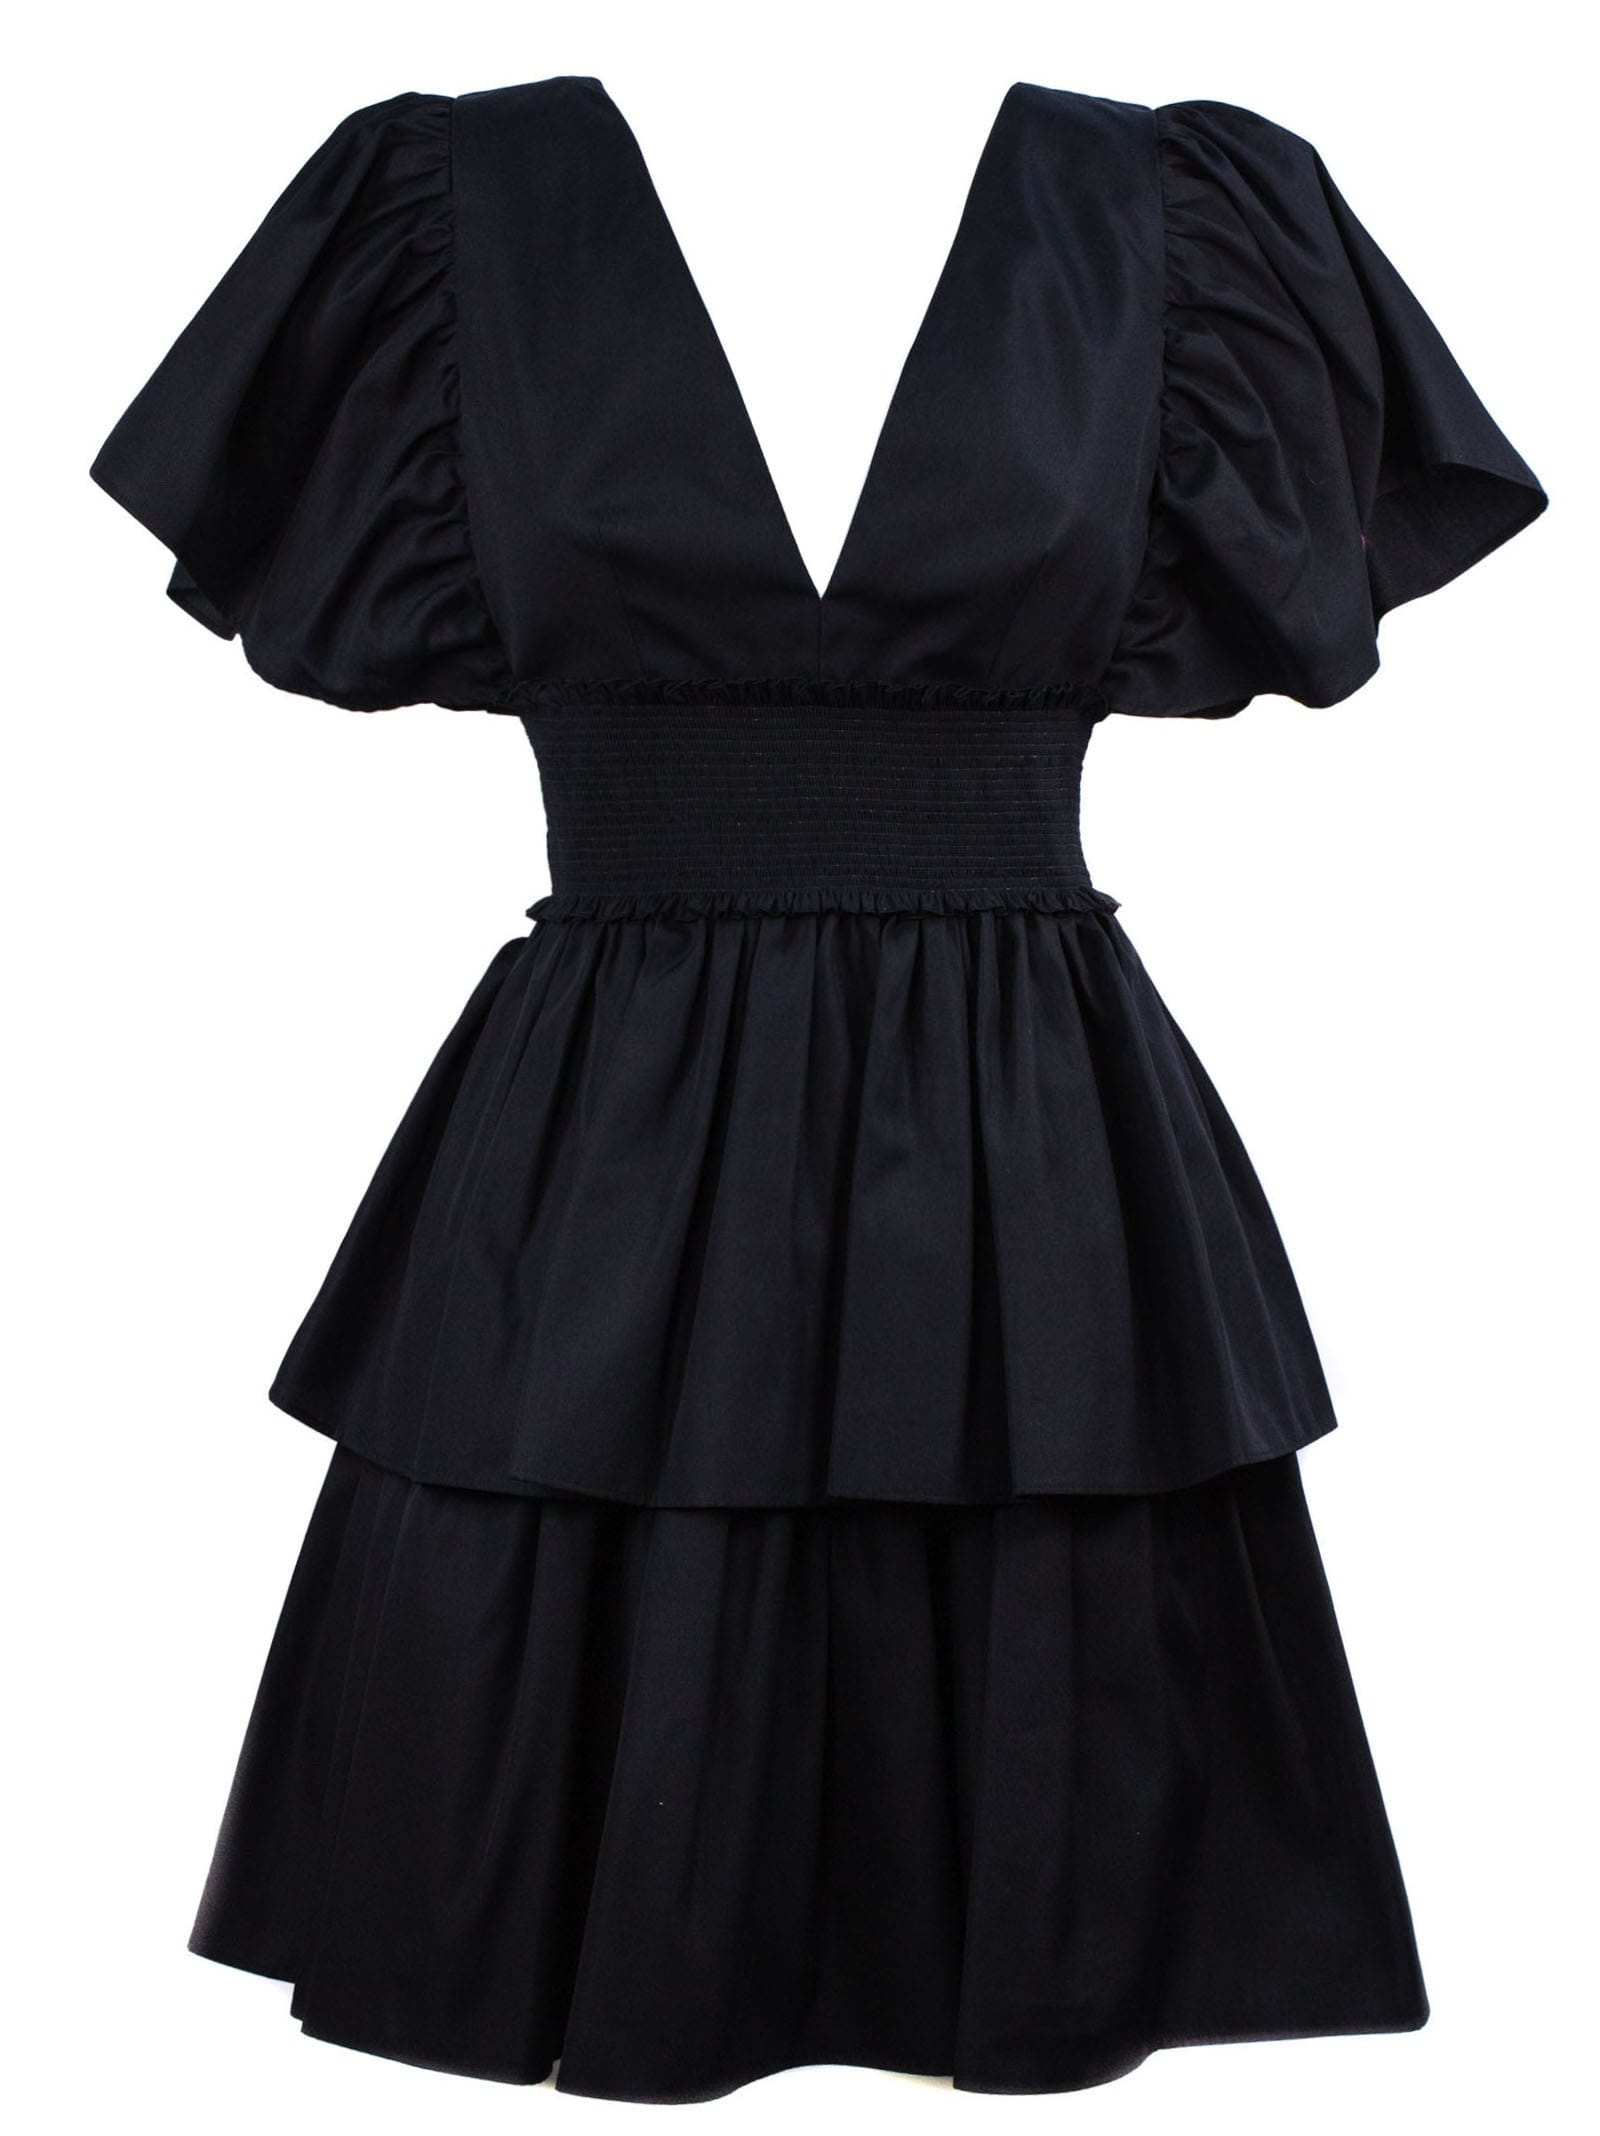 Buy Fausto Puglisi Black Cotton Dress online, shop Fausto Puglisi with free shipping